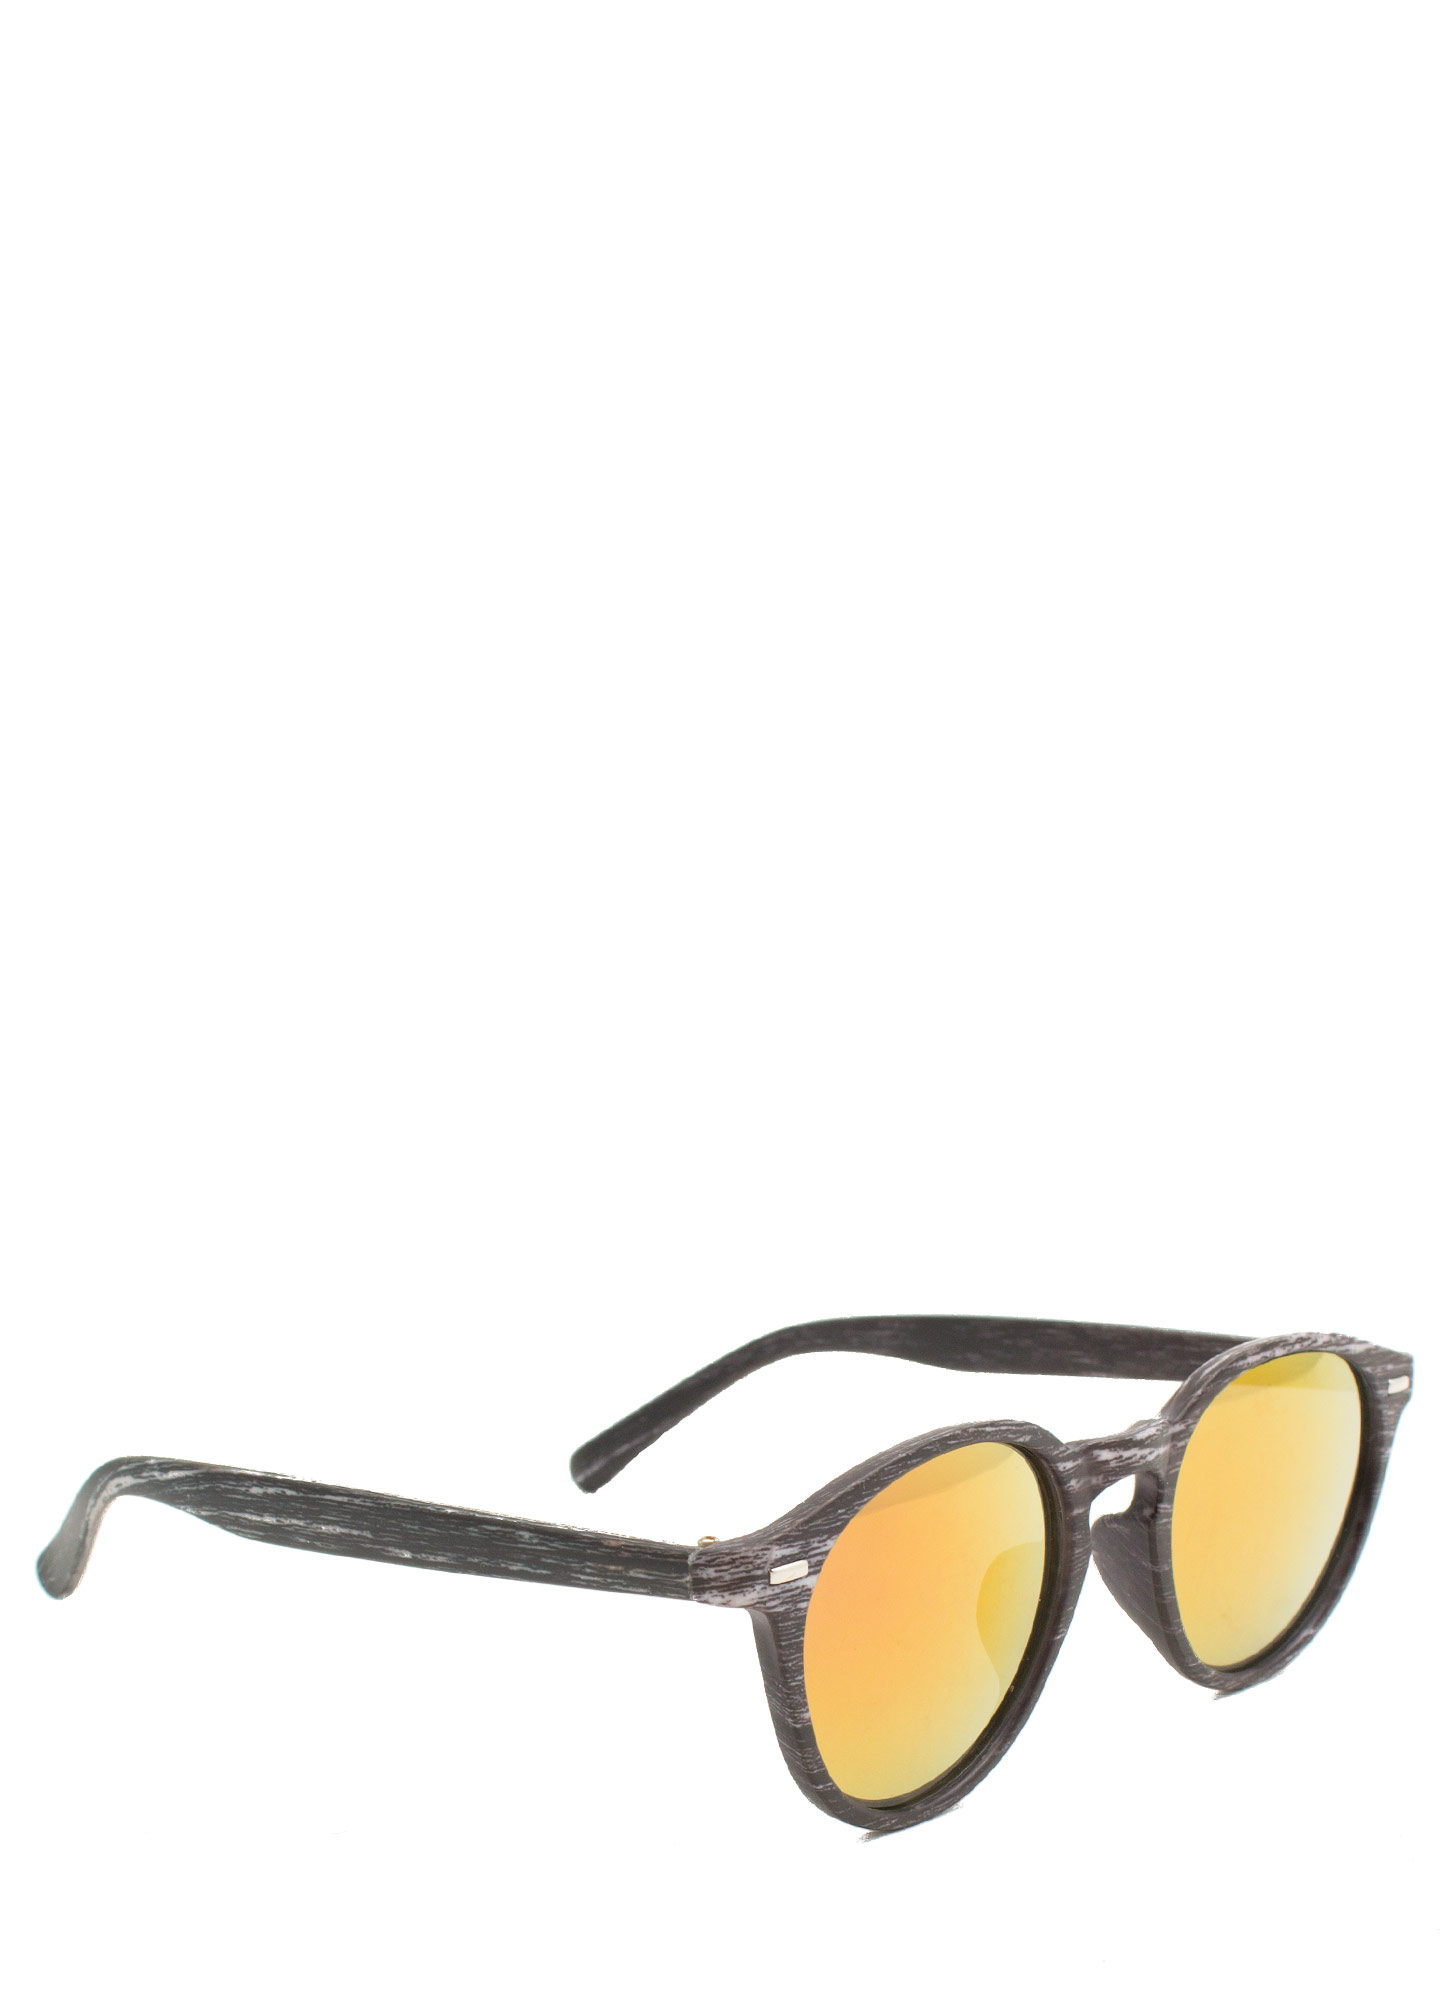 Wood Finish Reflective Sunglasses ORANGEGREY